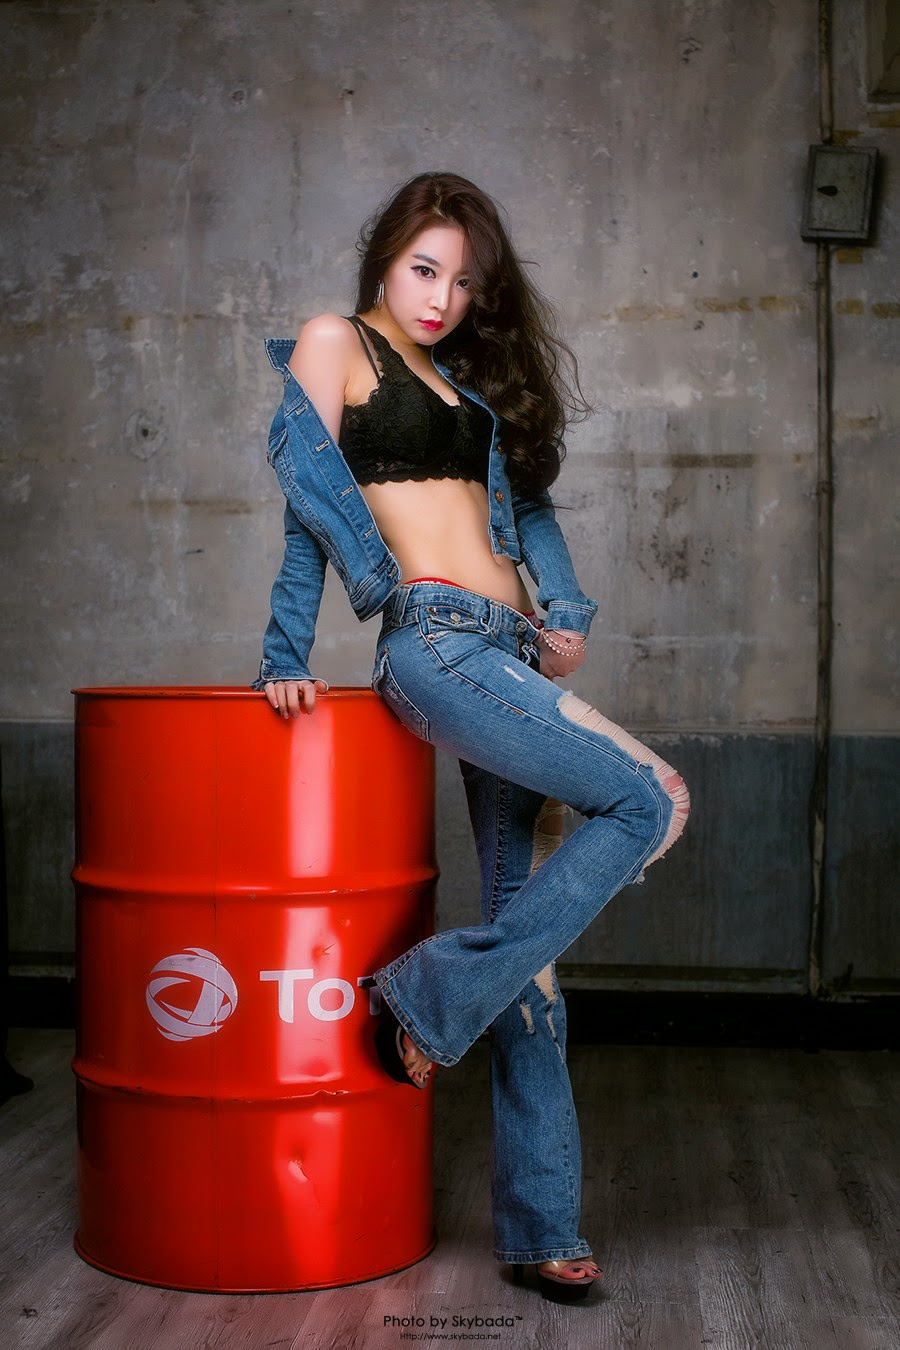 2 Lee Eun Seo - Over A Barrel - very cute asian girl-girlcute4u.blogspot.com